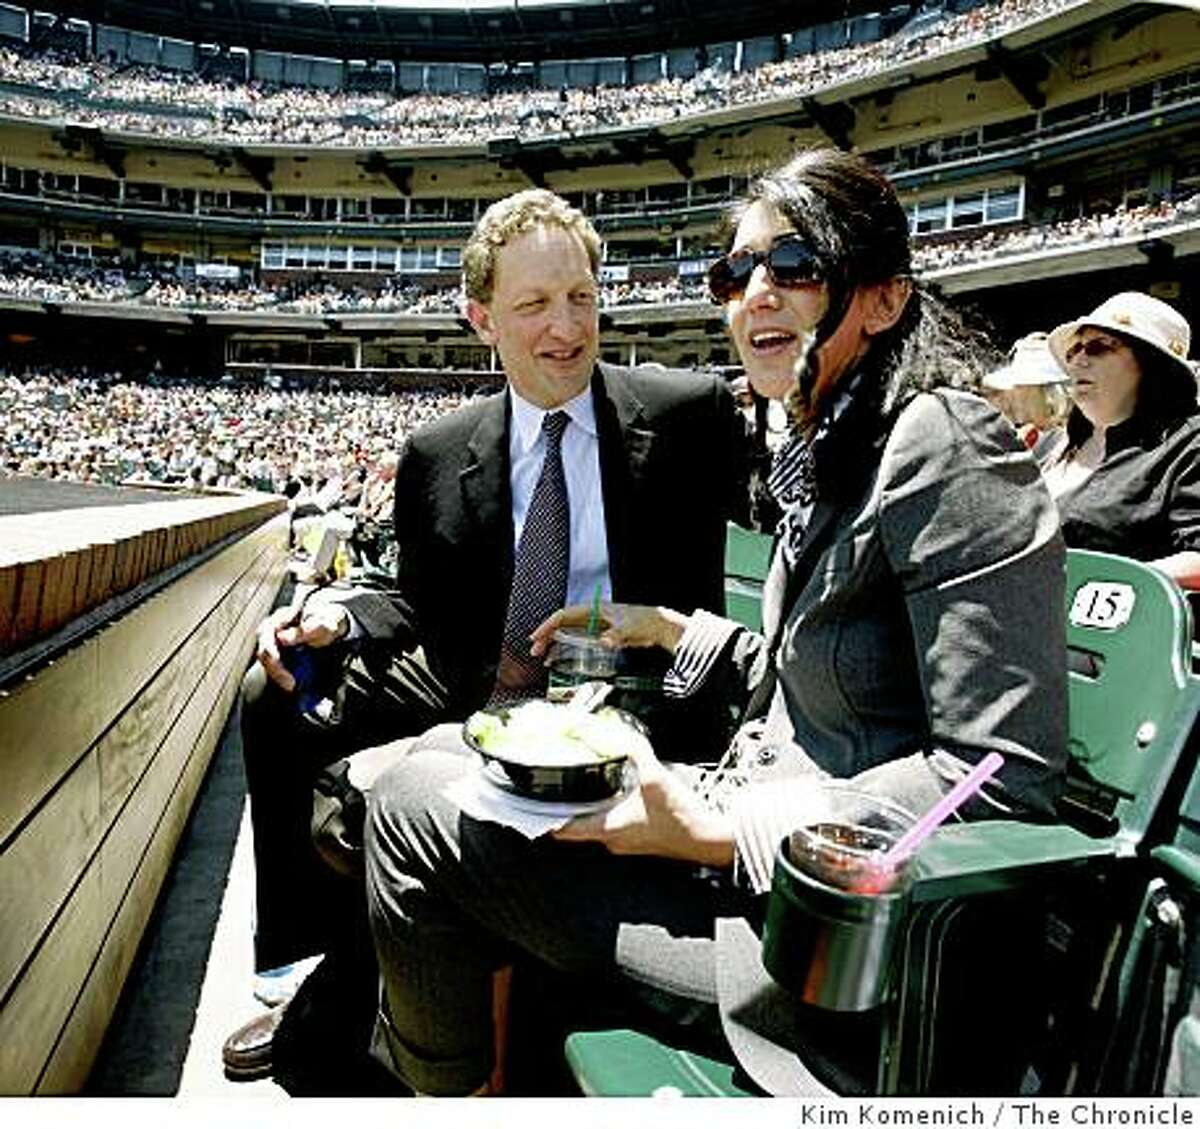 San Francisco Giants Executive Vice President and Chief Operating Officer Larry Baer and wife Pam Baer attend a game at AT&T Park in San Francisco, Calif., on Wednesday, June 4, 2008.Photo by Kim Komenich / The Chronicle